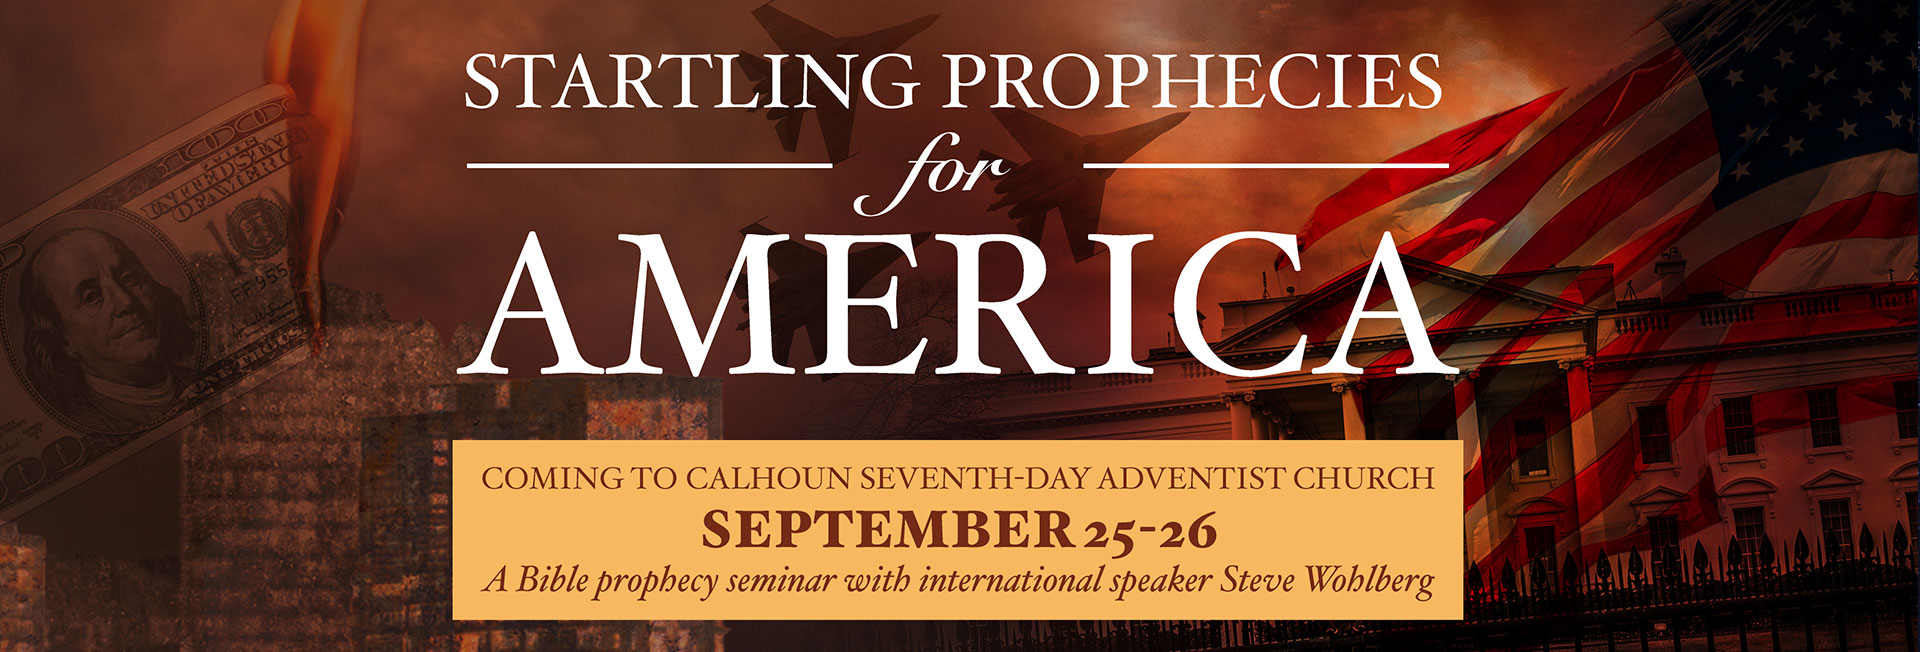 Startling Prophecies for America September 25-26